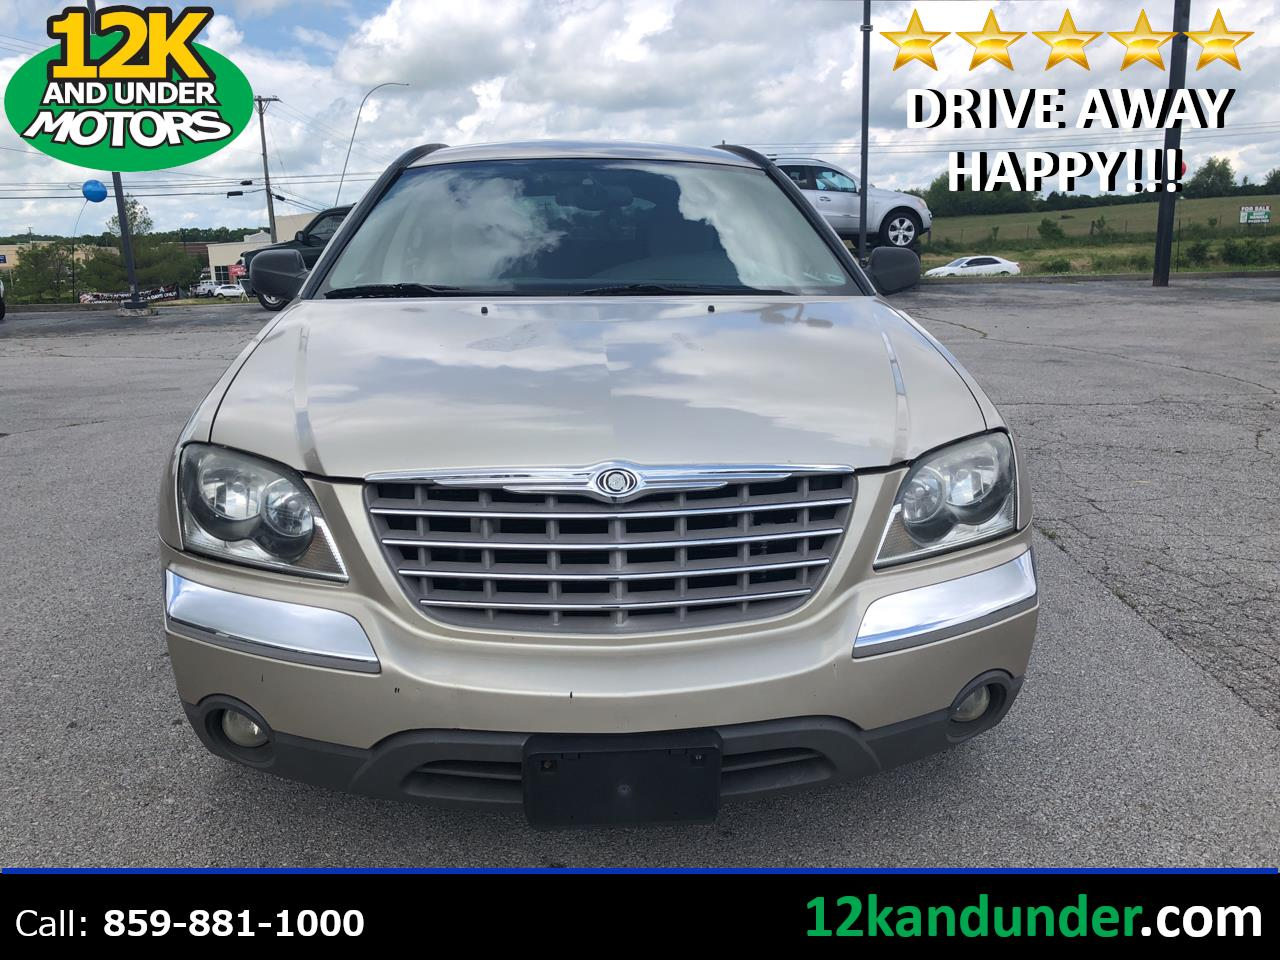 Chrysler Pacifica 2004 4dr Wgn FWD 2004